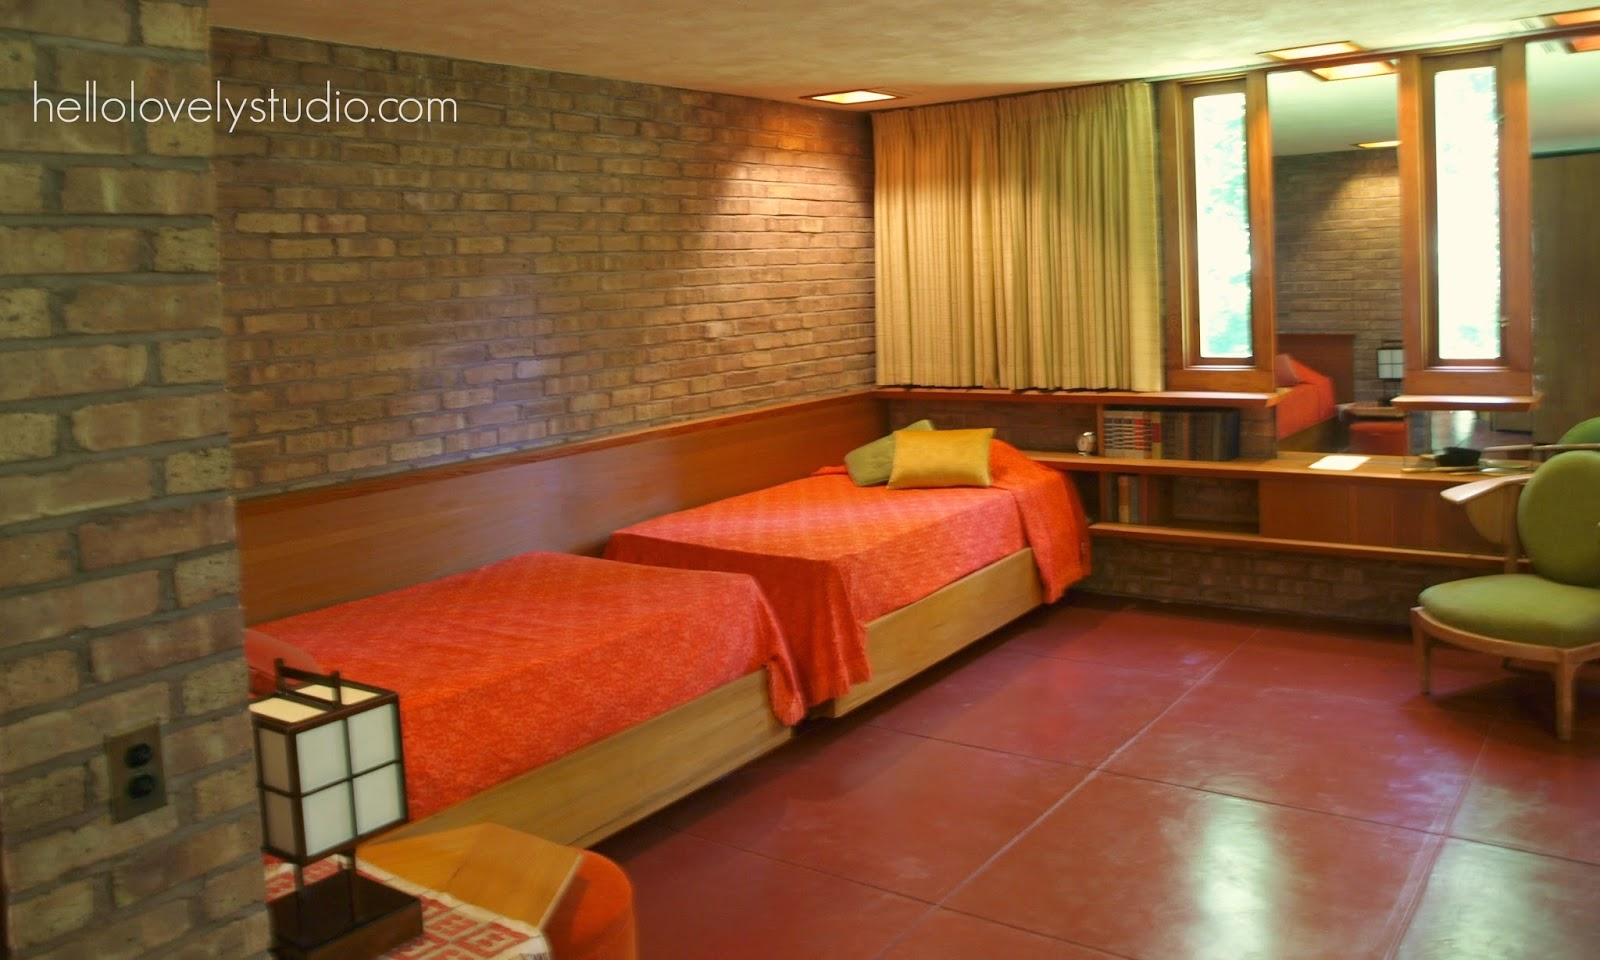 Bedroom with twin beds and orange bed linens. Frank Lloyd Wright Laurent House designed for owner Kenneth Laurent on Spring Brook Road in Rockford/ Designed to be wheelchair-accessible. #flw #franklloydwrighthouse #midcenturymodernarchitecture